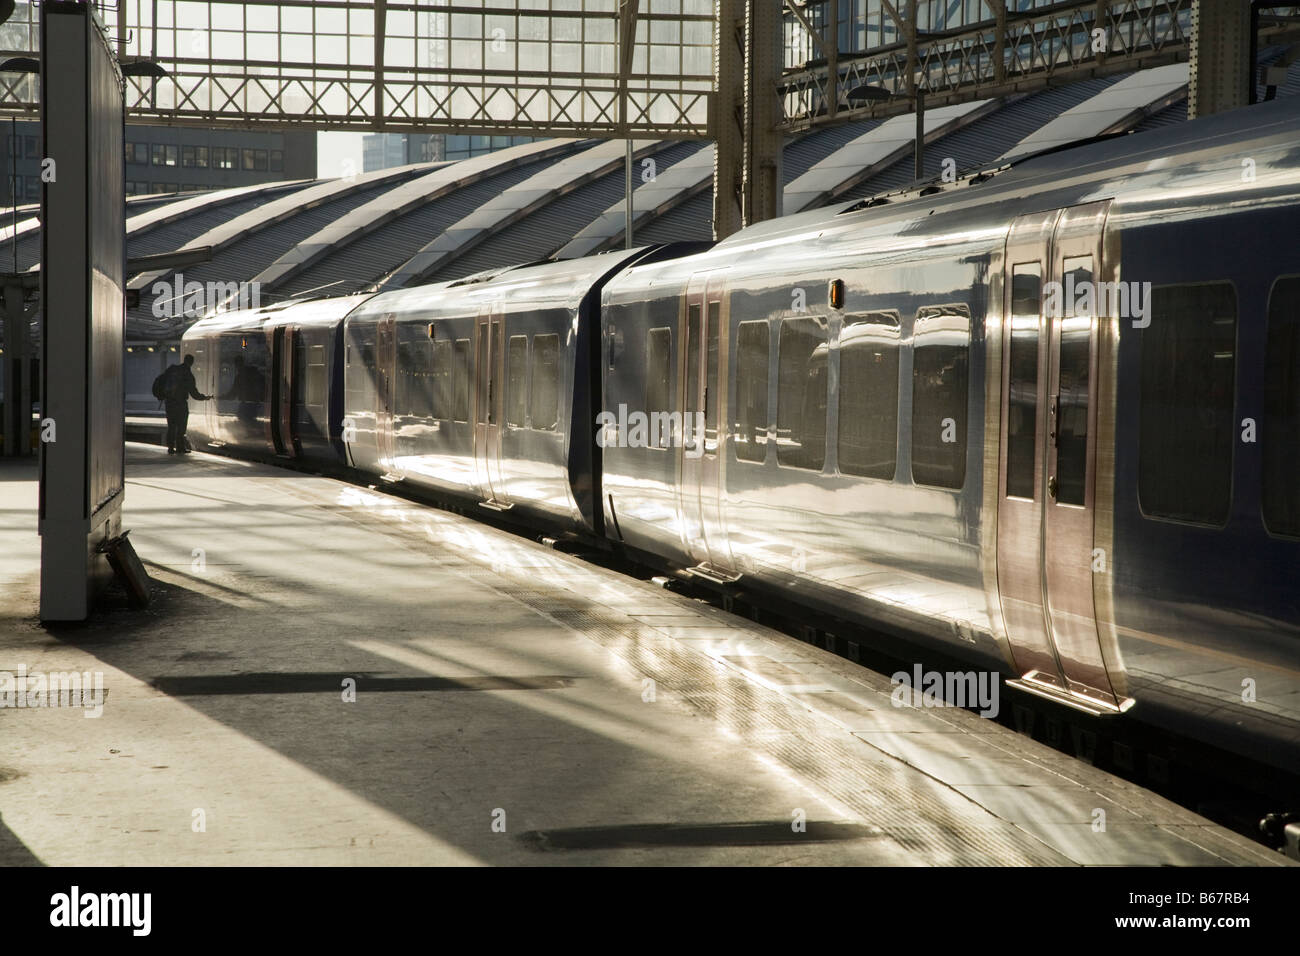 Southwest Trains train and single passenger at the far end of the platform. Waterloo rail station, London. UK. - Stock Image